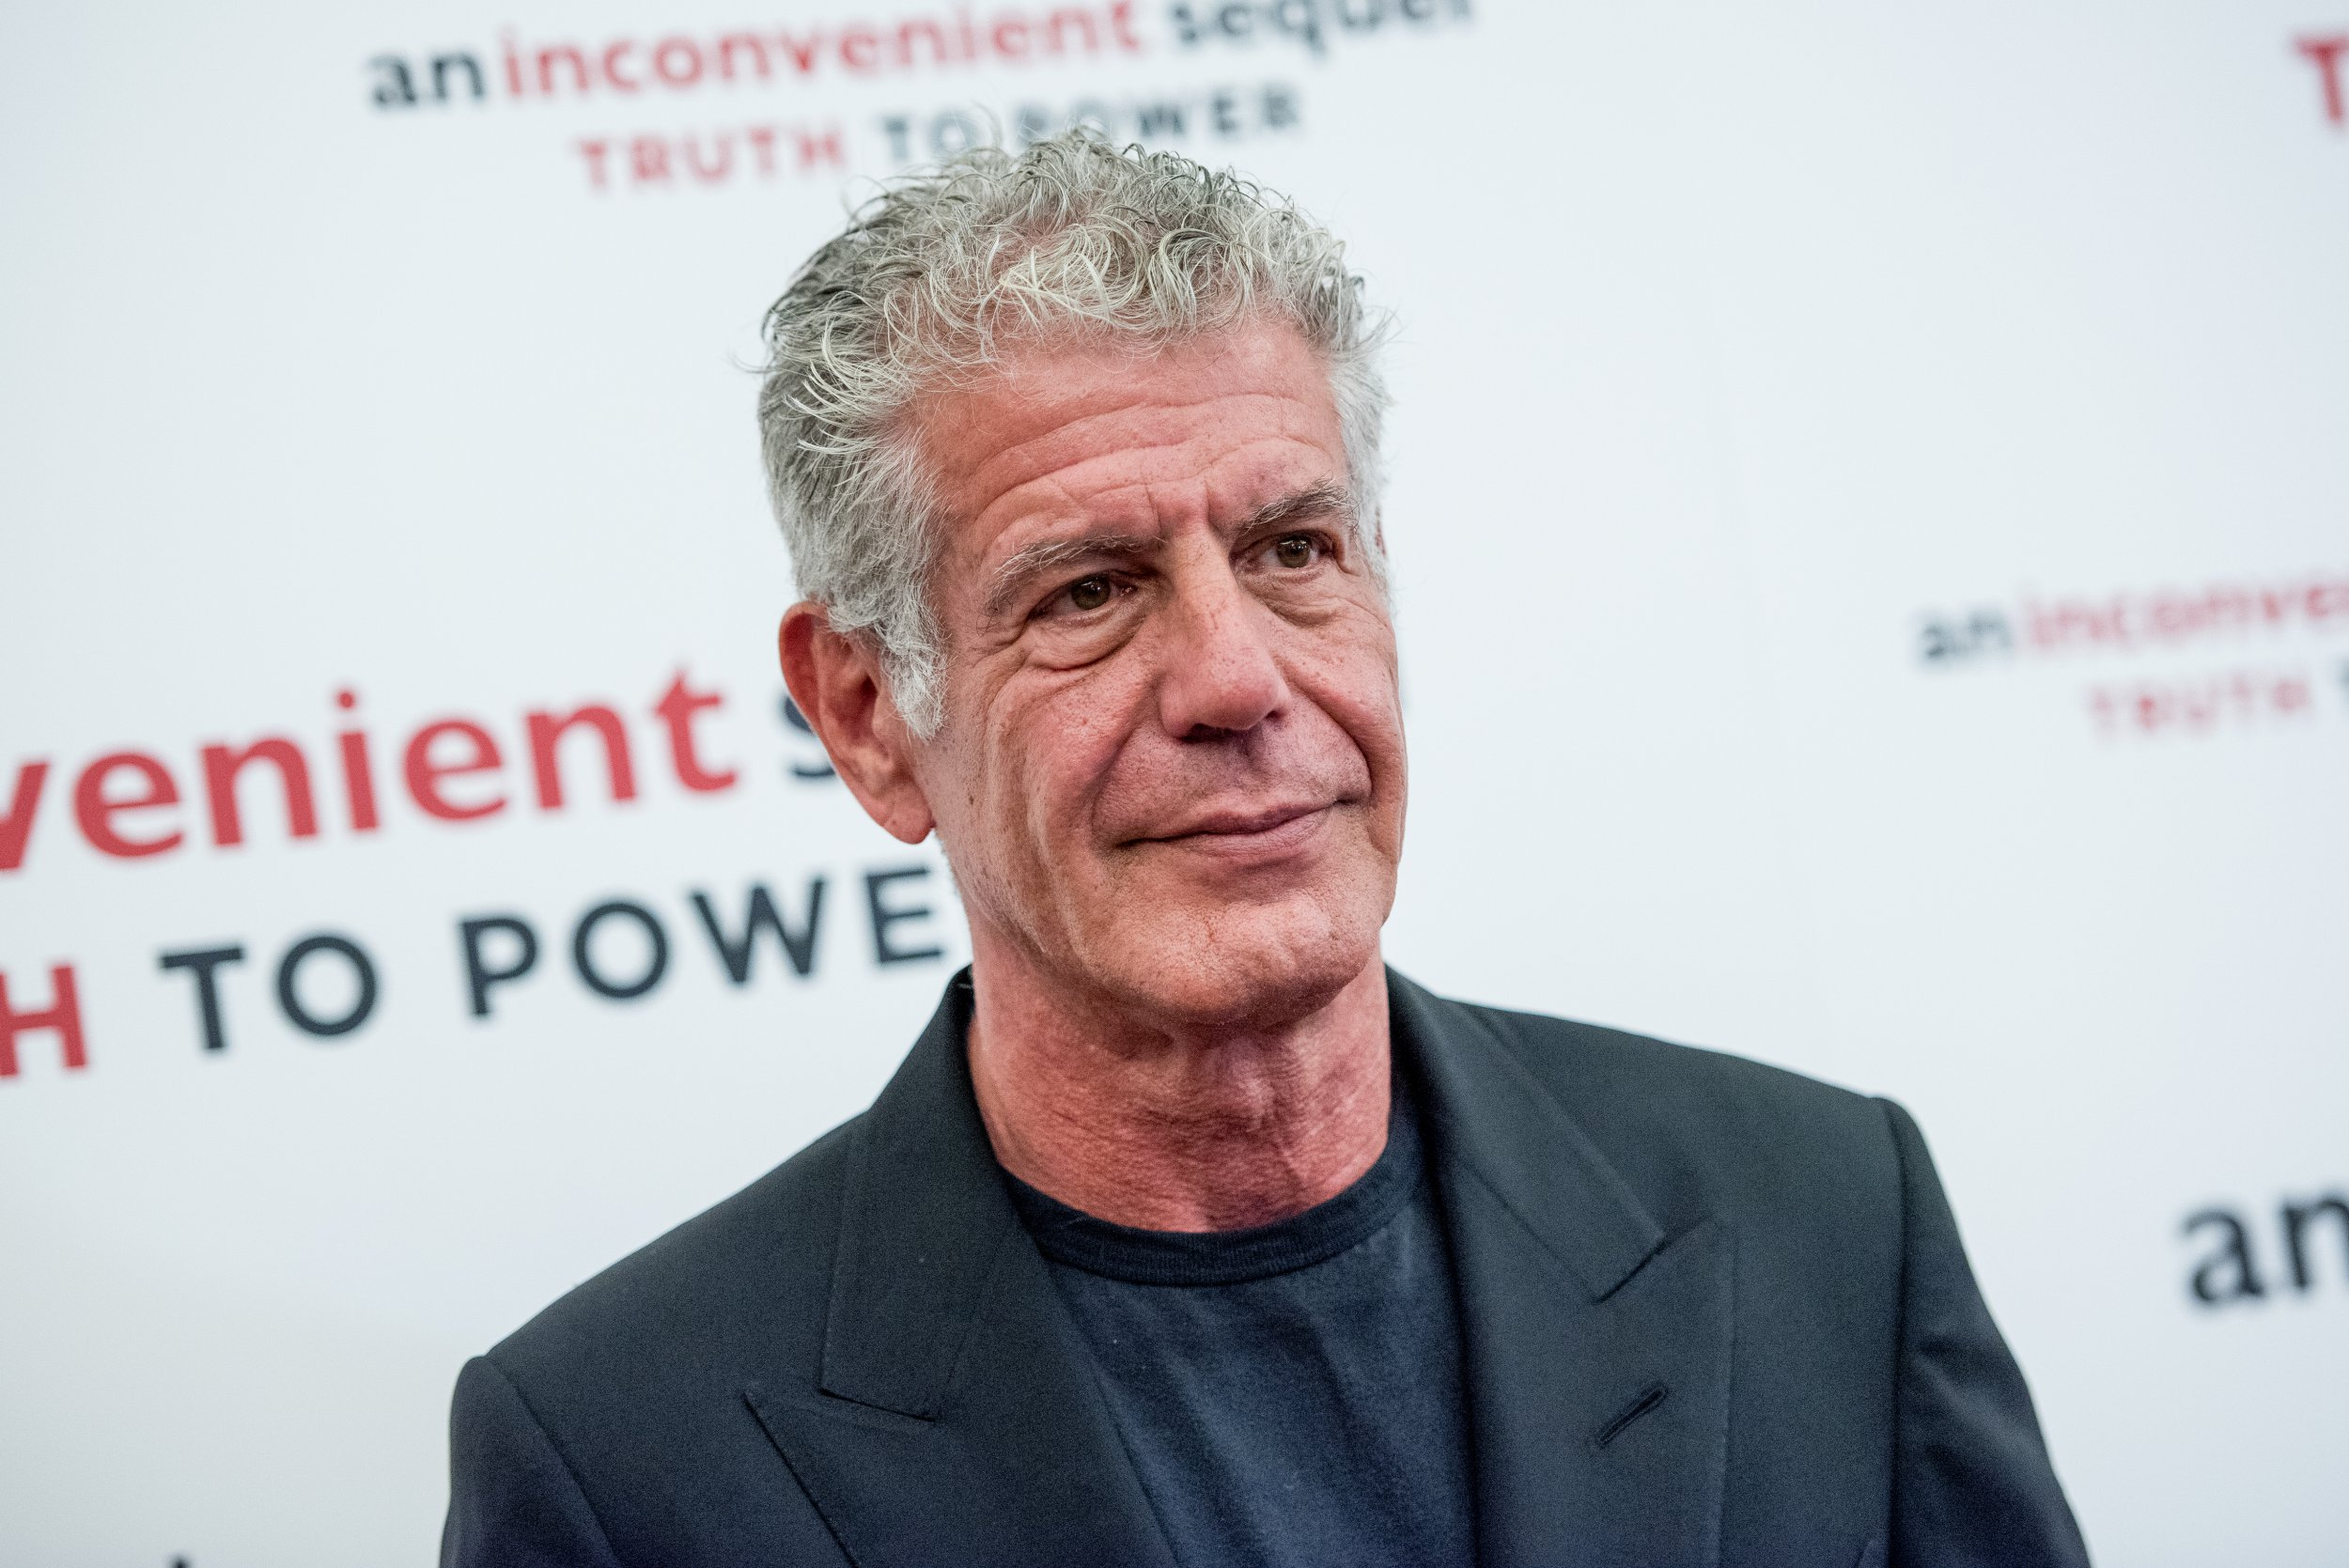 """NEW YORK, NY - JULY 17: Anthony Bourdain attends """"An Inconvenient Sequel: Truth To Power"""" New York screening at the Whitby Hotel on July 17, 2017 in New York City. (Photo by Roy Rochlin/FilmMagic)"""